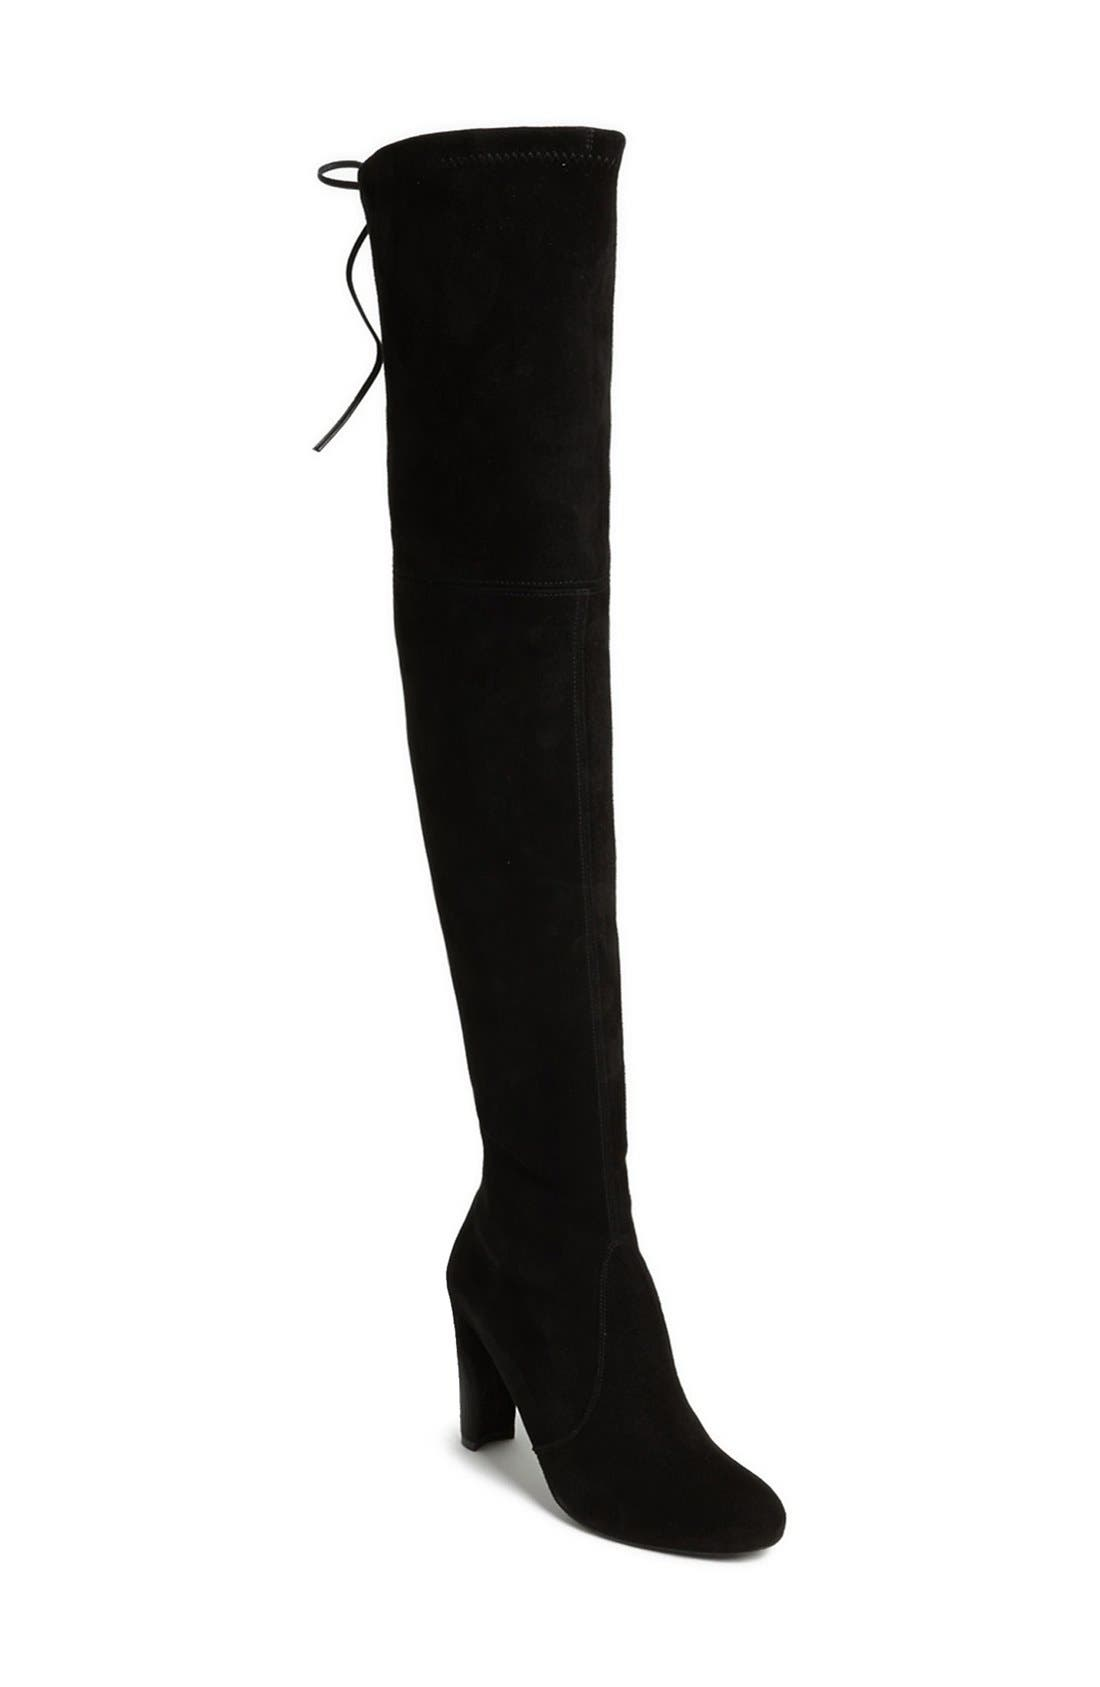 'Highland' Over the Knee Boot,                             Main thumbnail 1, color,                             BLACK SUEDE